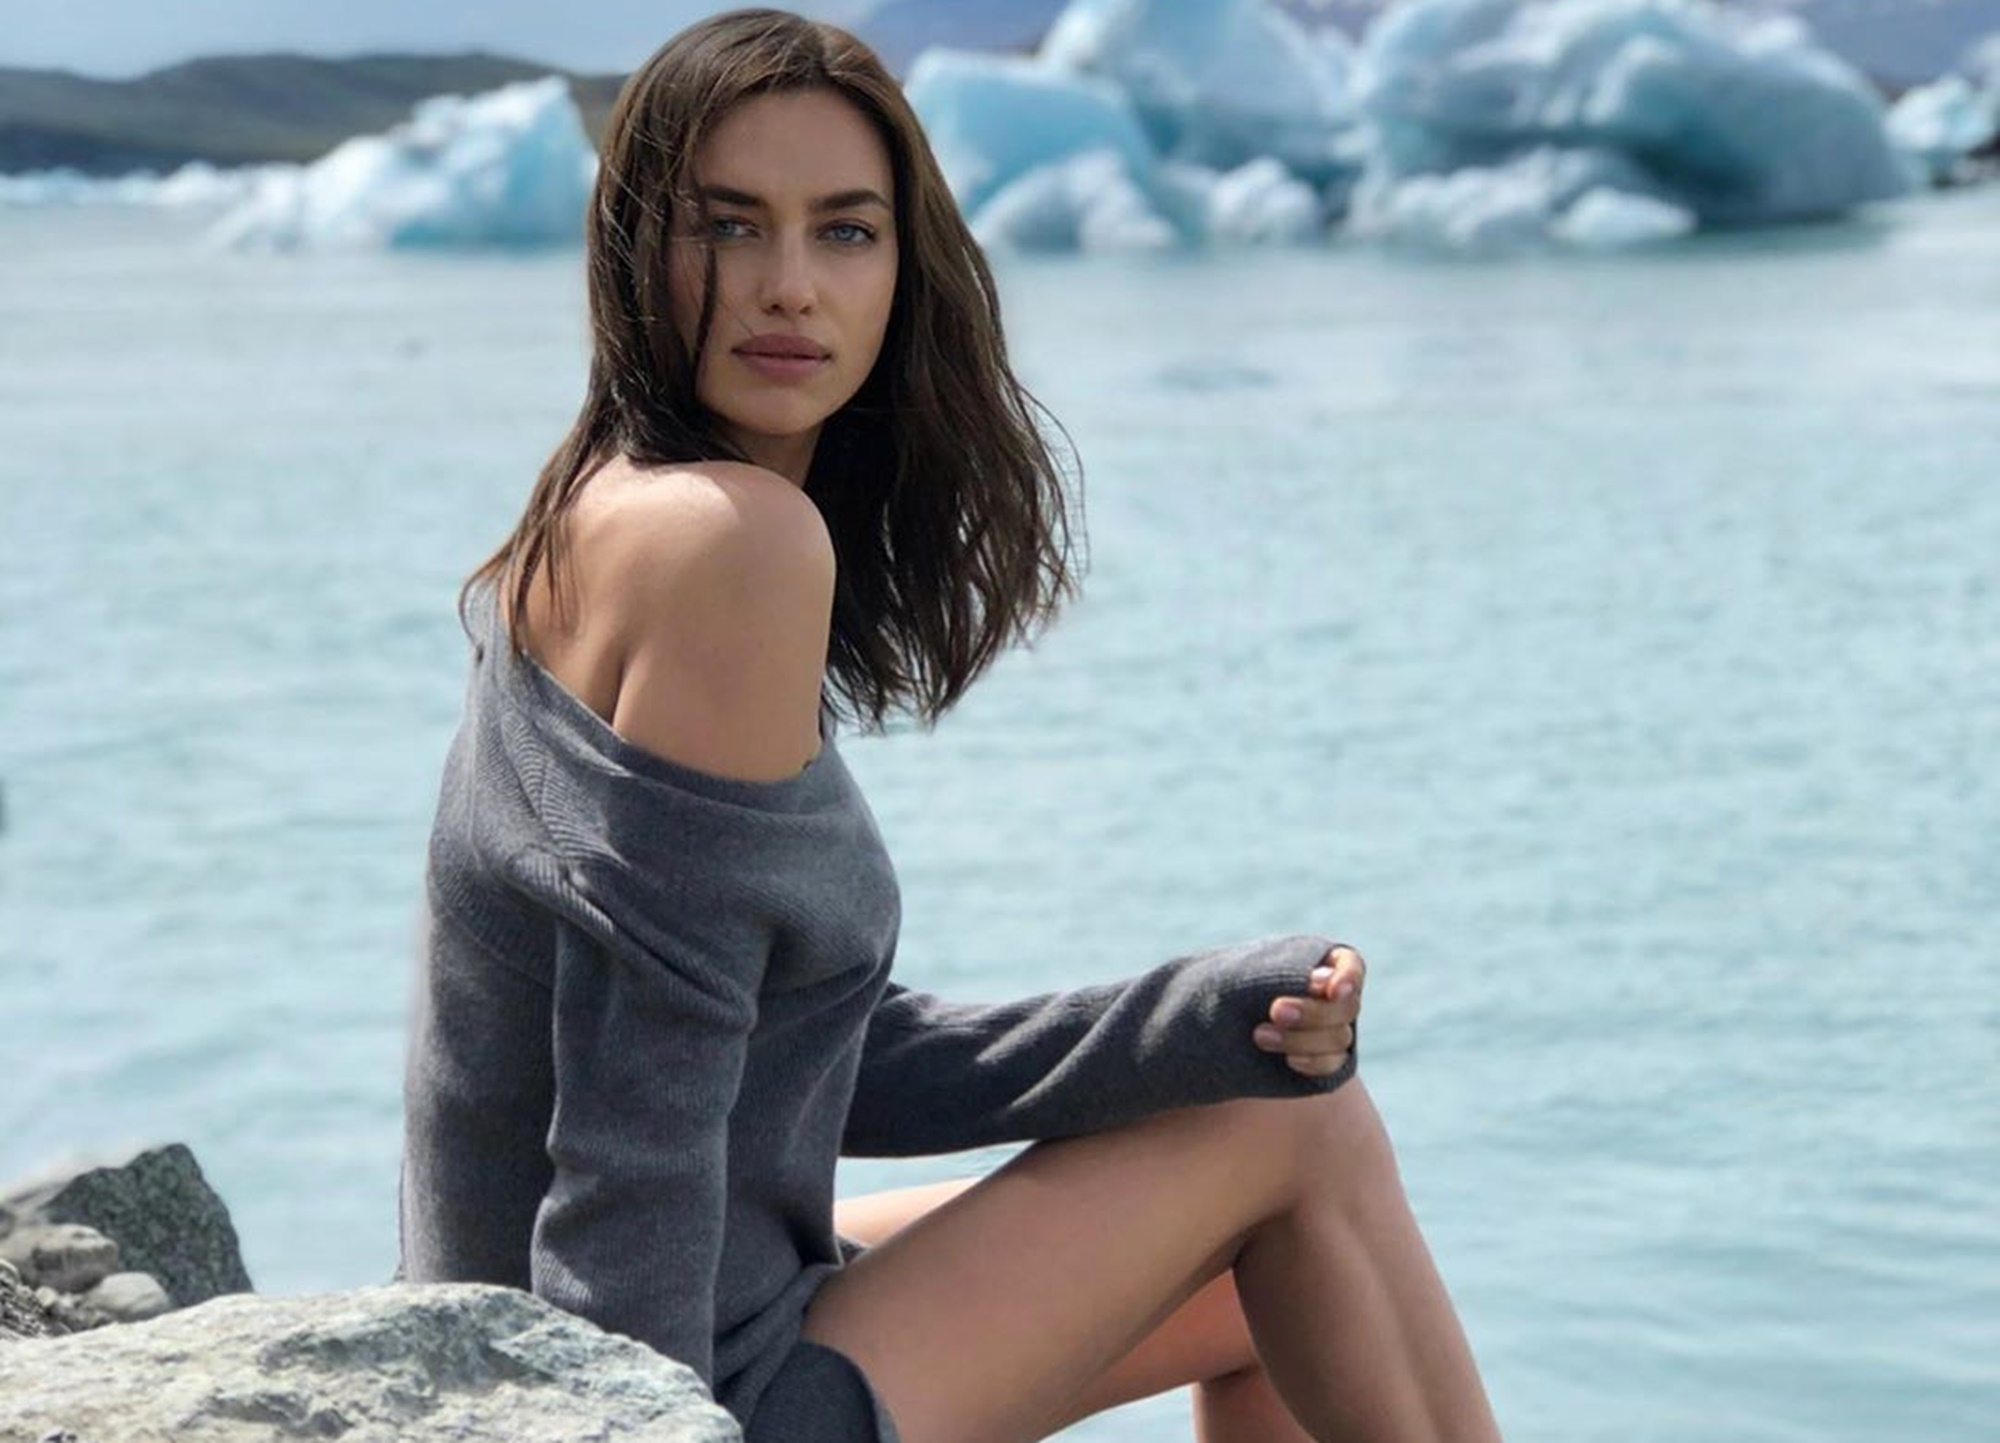 irina-shayk-shows-bradley-cooper-what-he-is-missing-with-new-picture-in-tiny-bathing-suit-picture-where-she-leaves-nothing-to-the-imagination